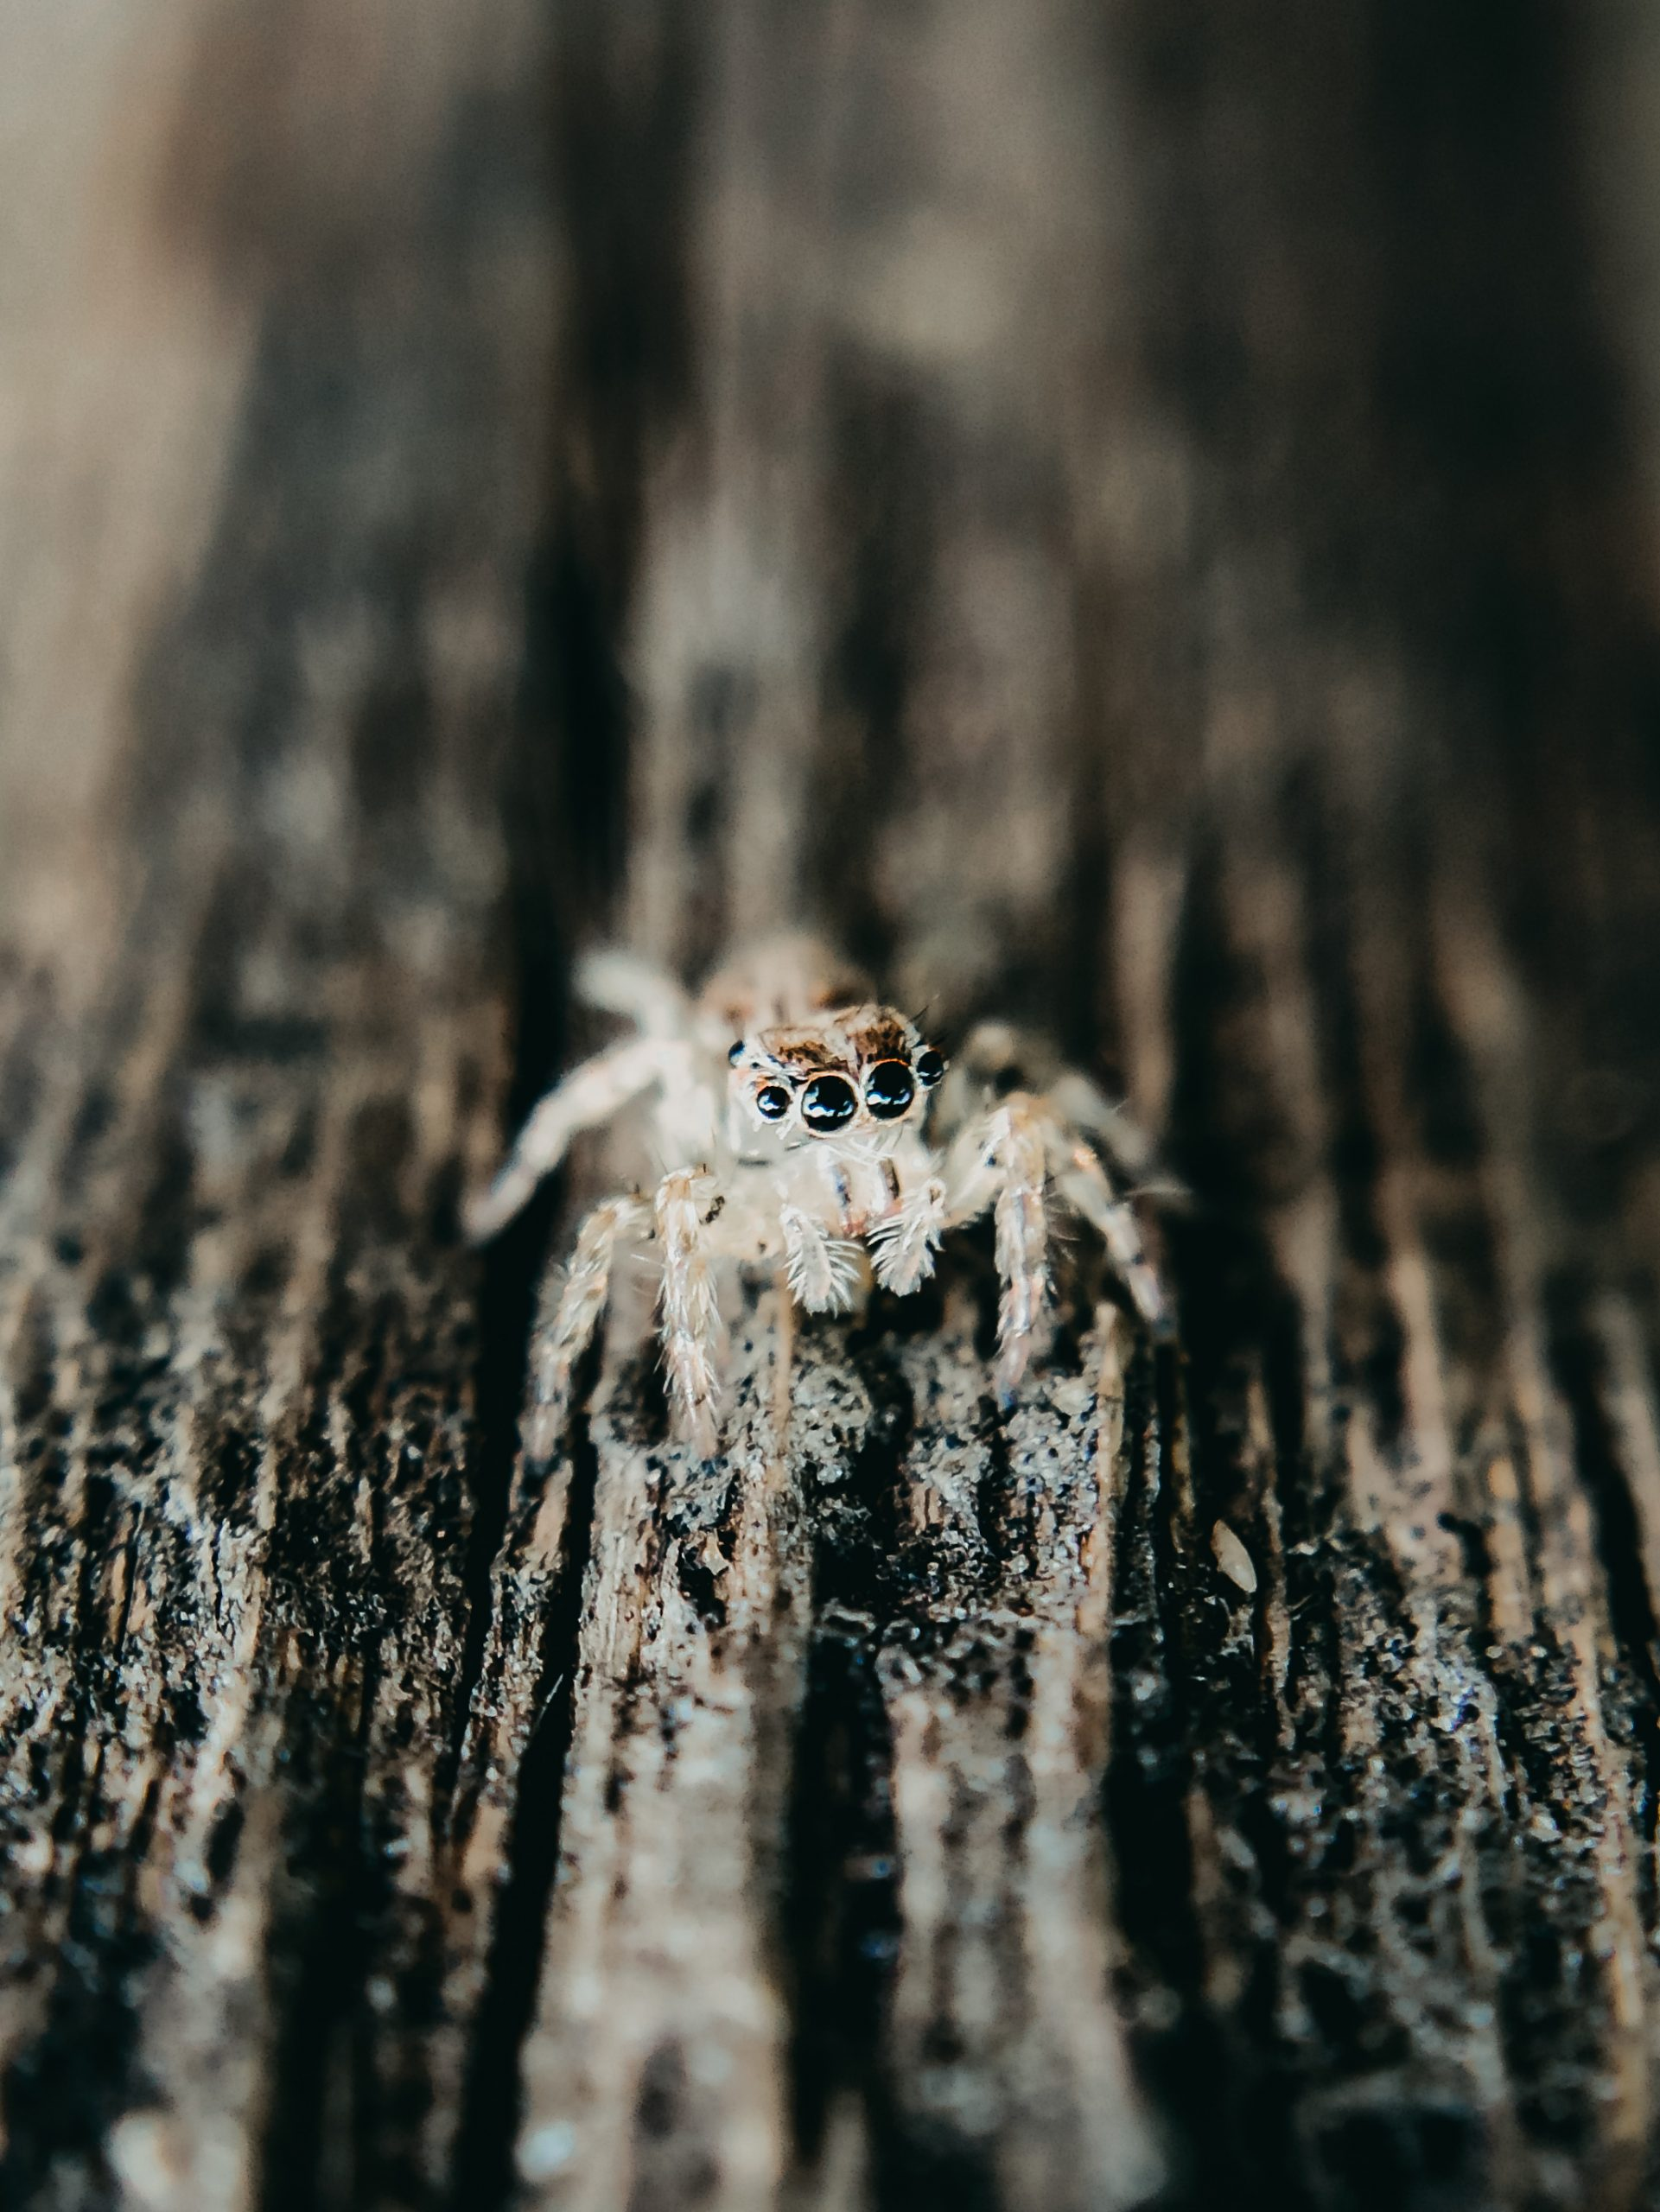 Spider on the tree